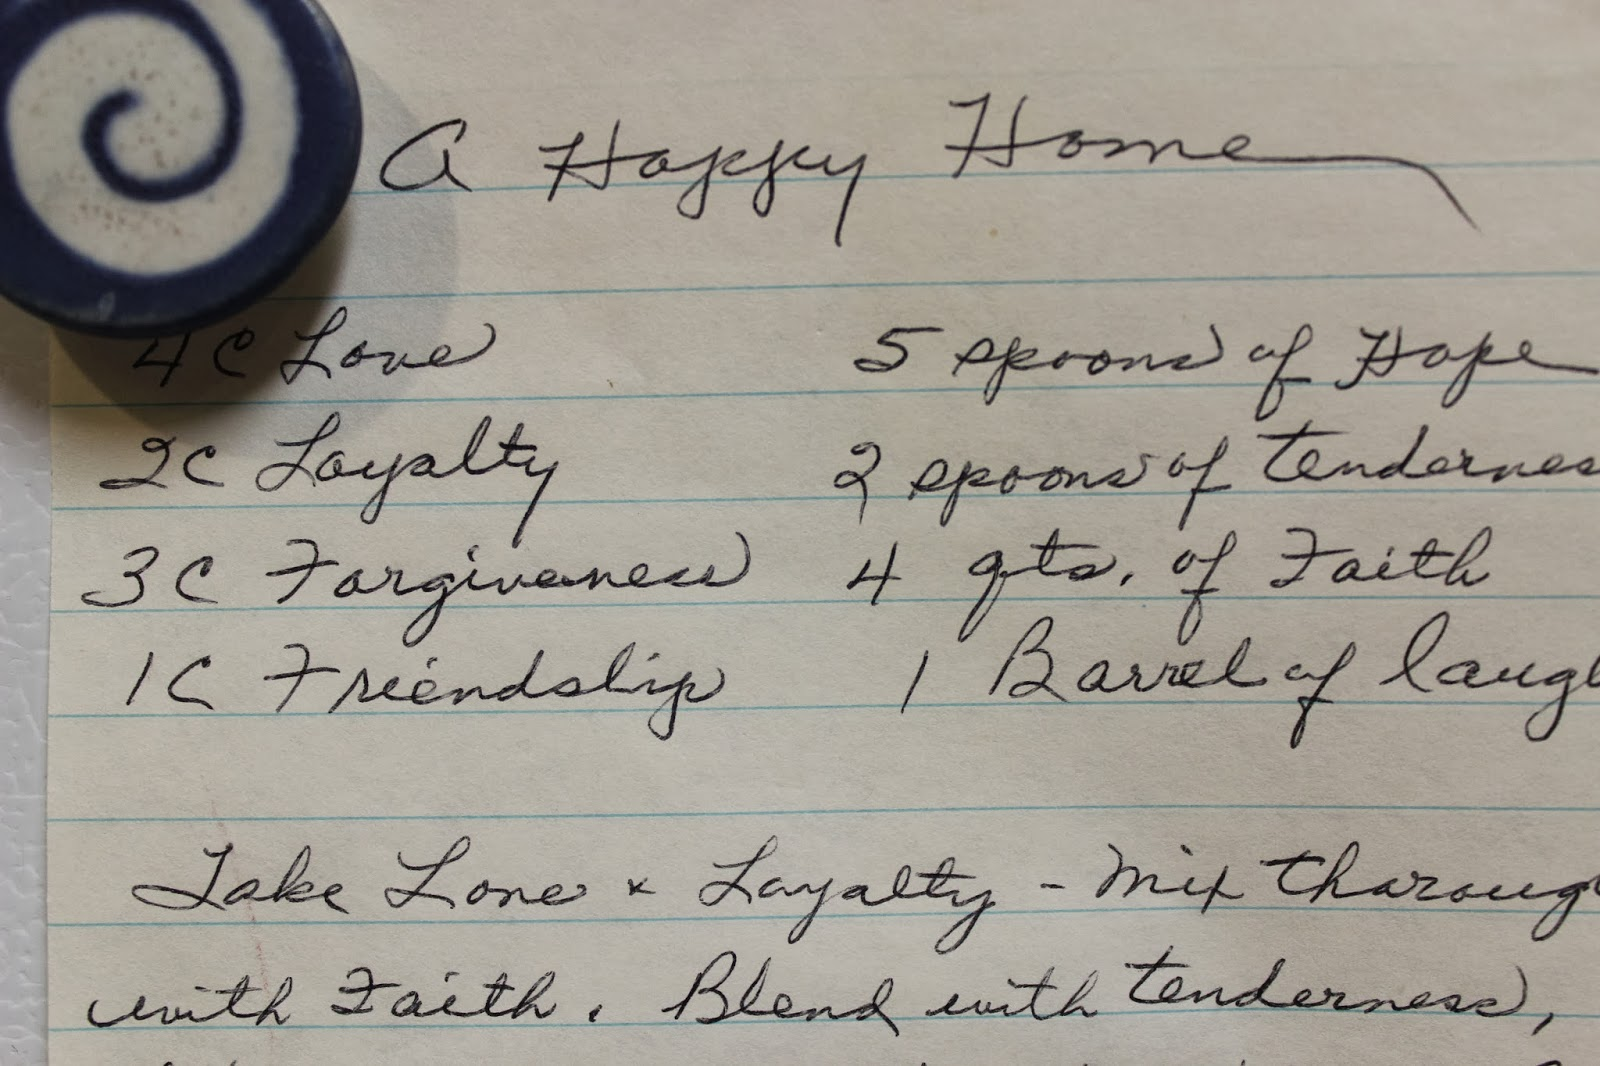 A recipe for A HAPPY HOME. This recipe must be made EVERYDAY.